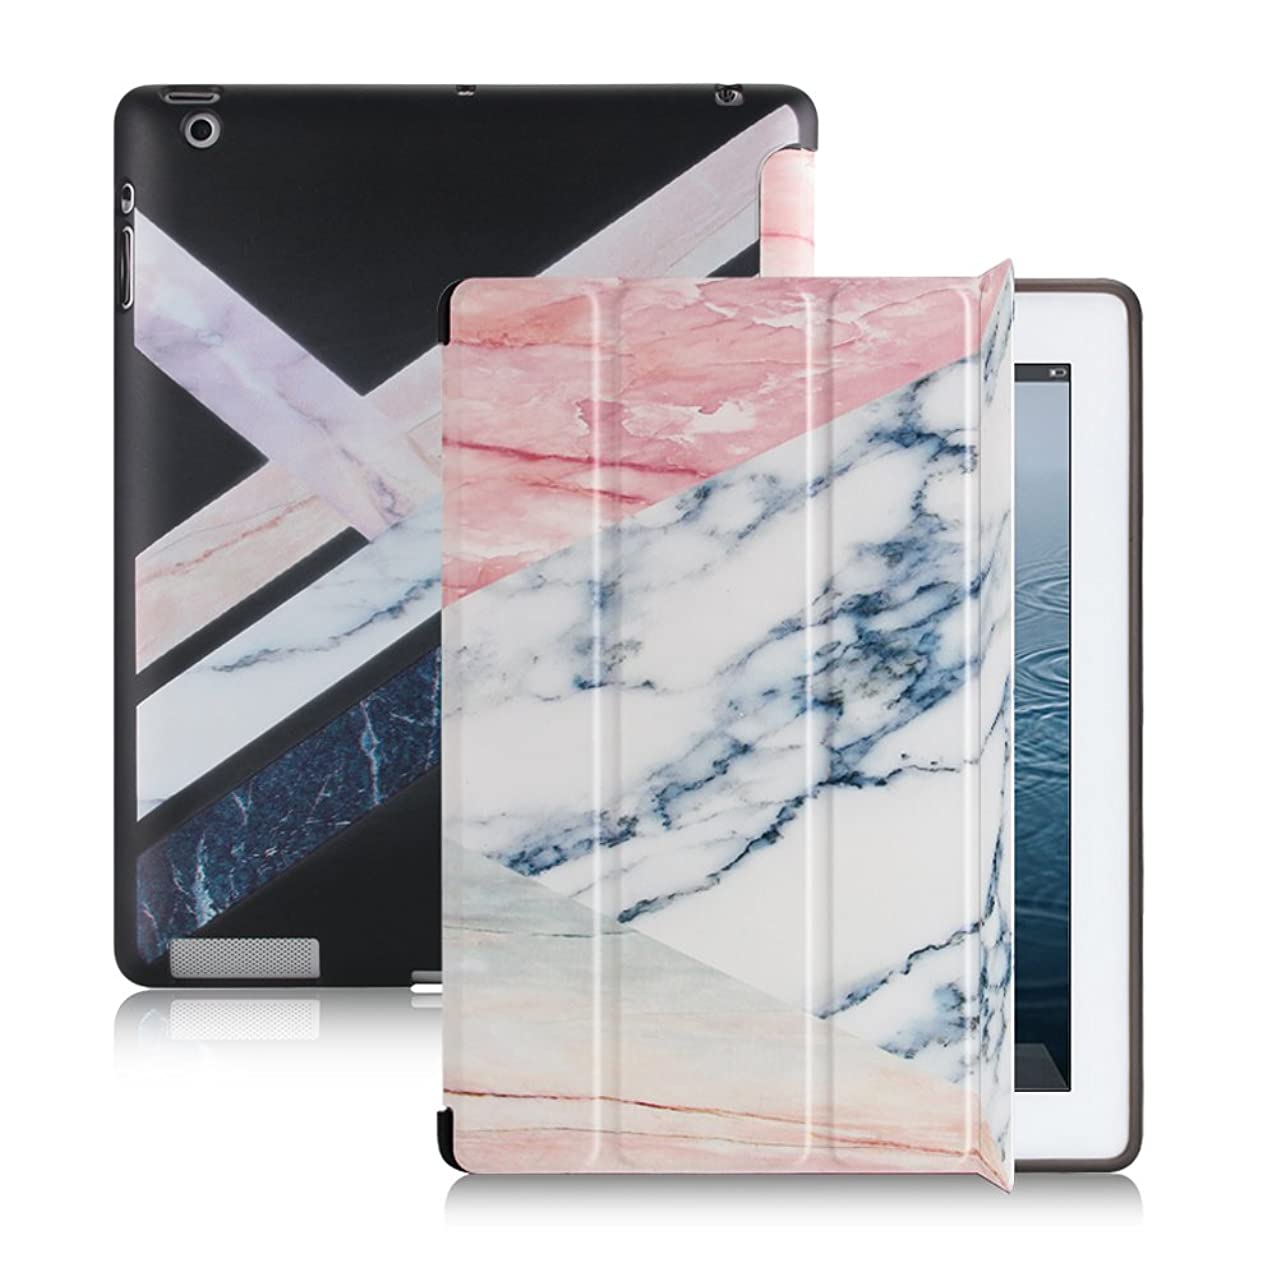 Smart Folio Case for iPad 4/3/2 Marble Pattern, Magnetic Auto Wake/Sleep Ultra Slim Trifold with Stand Flexible Soft TPU Cover Compatible Apple iPad 2nd 3rd 4th Generation case (Rose Gold White)